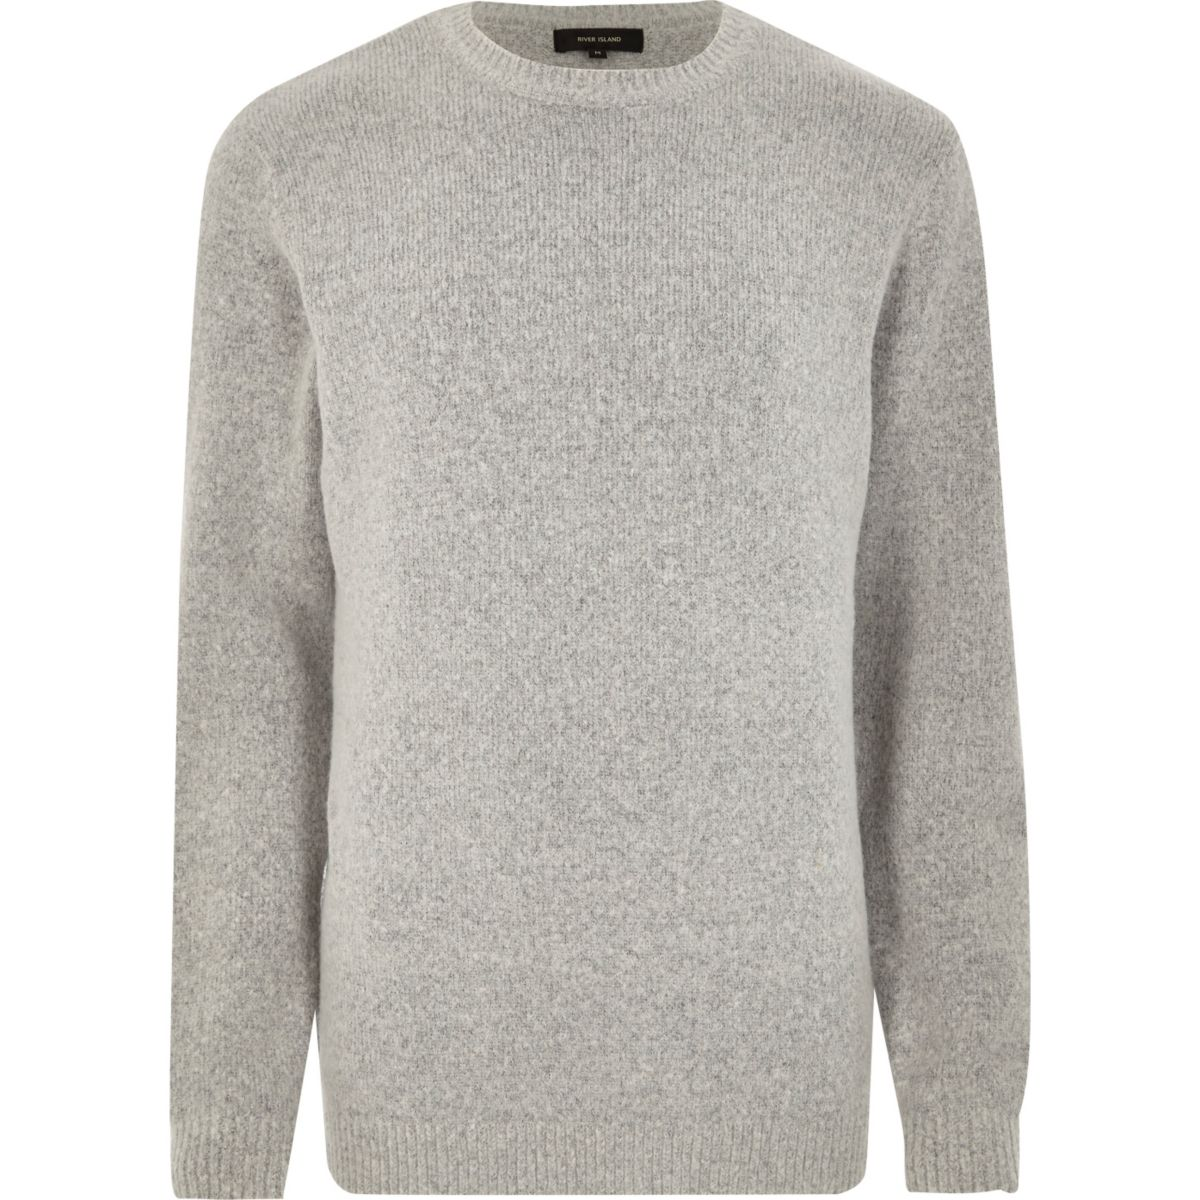 Grey soft crew neck knit jumper